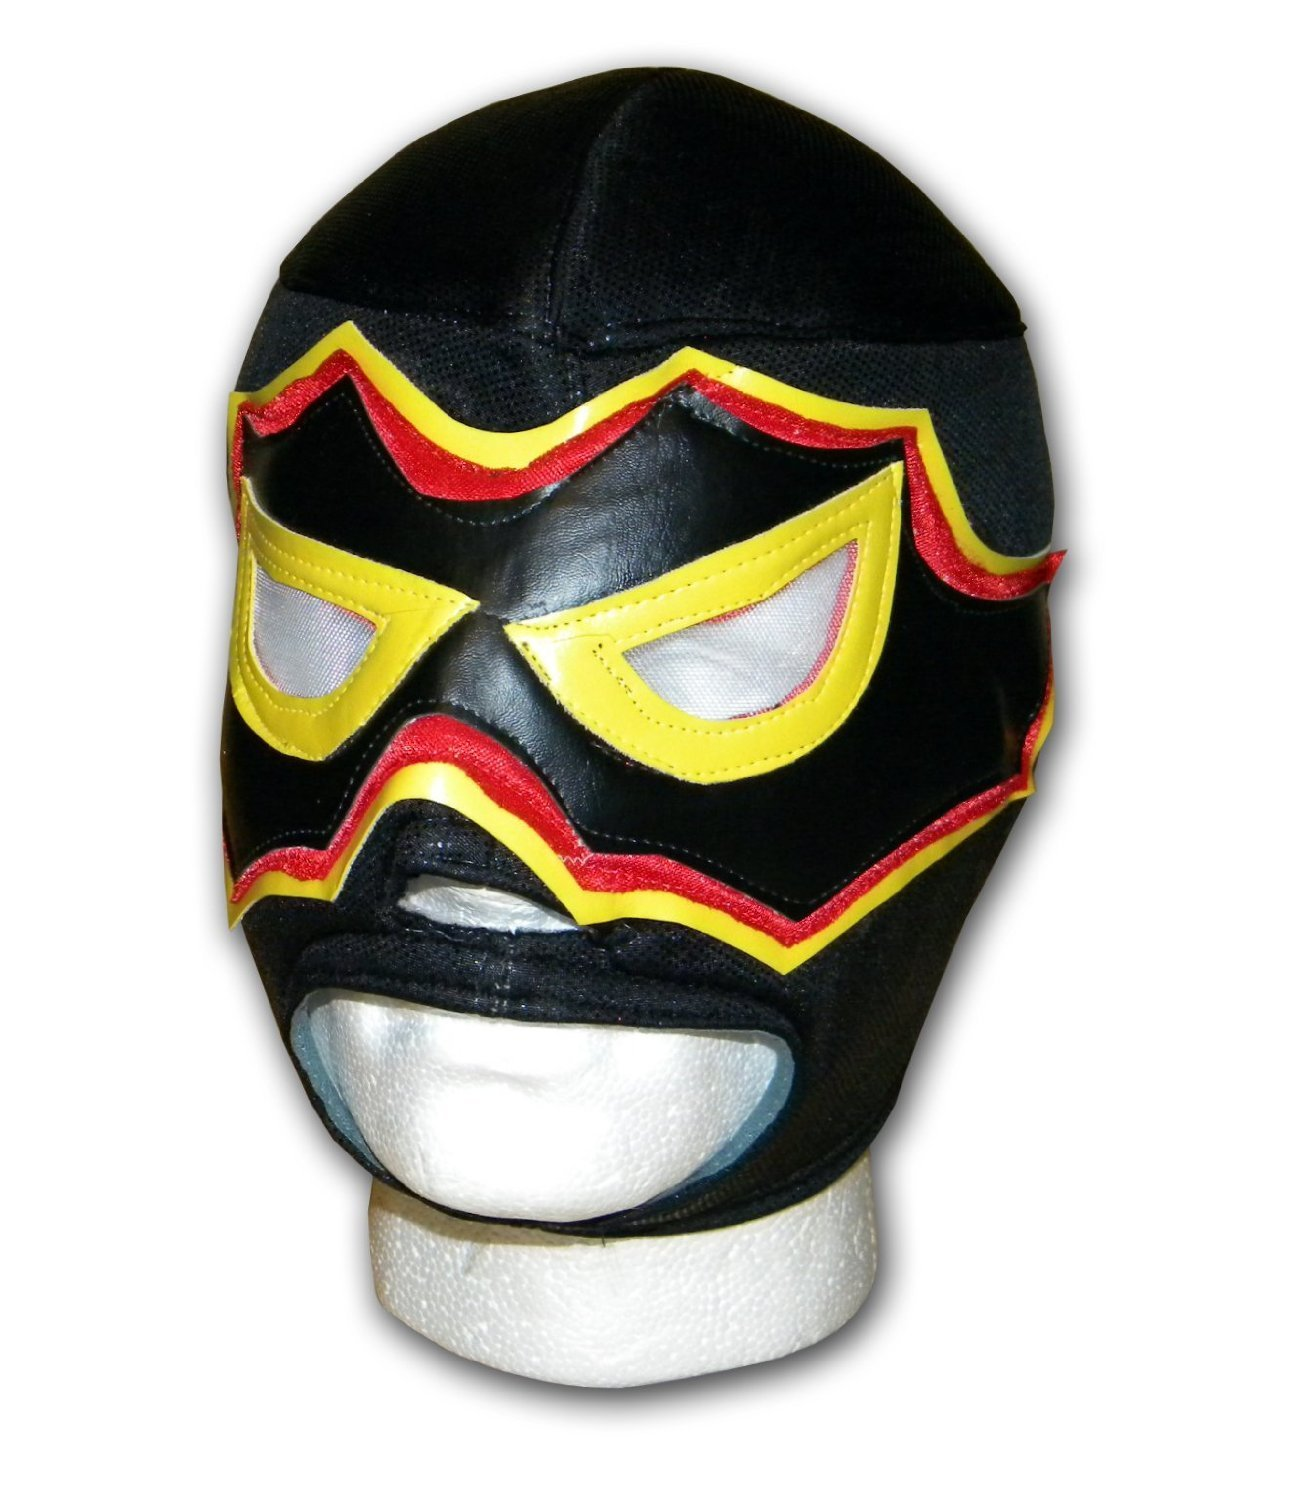 WRESTLING MASKS UK Men's Euphoria - Mexican Made - Tie Up Mask One Size Multicoloured by Wrestling